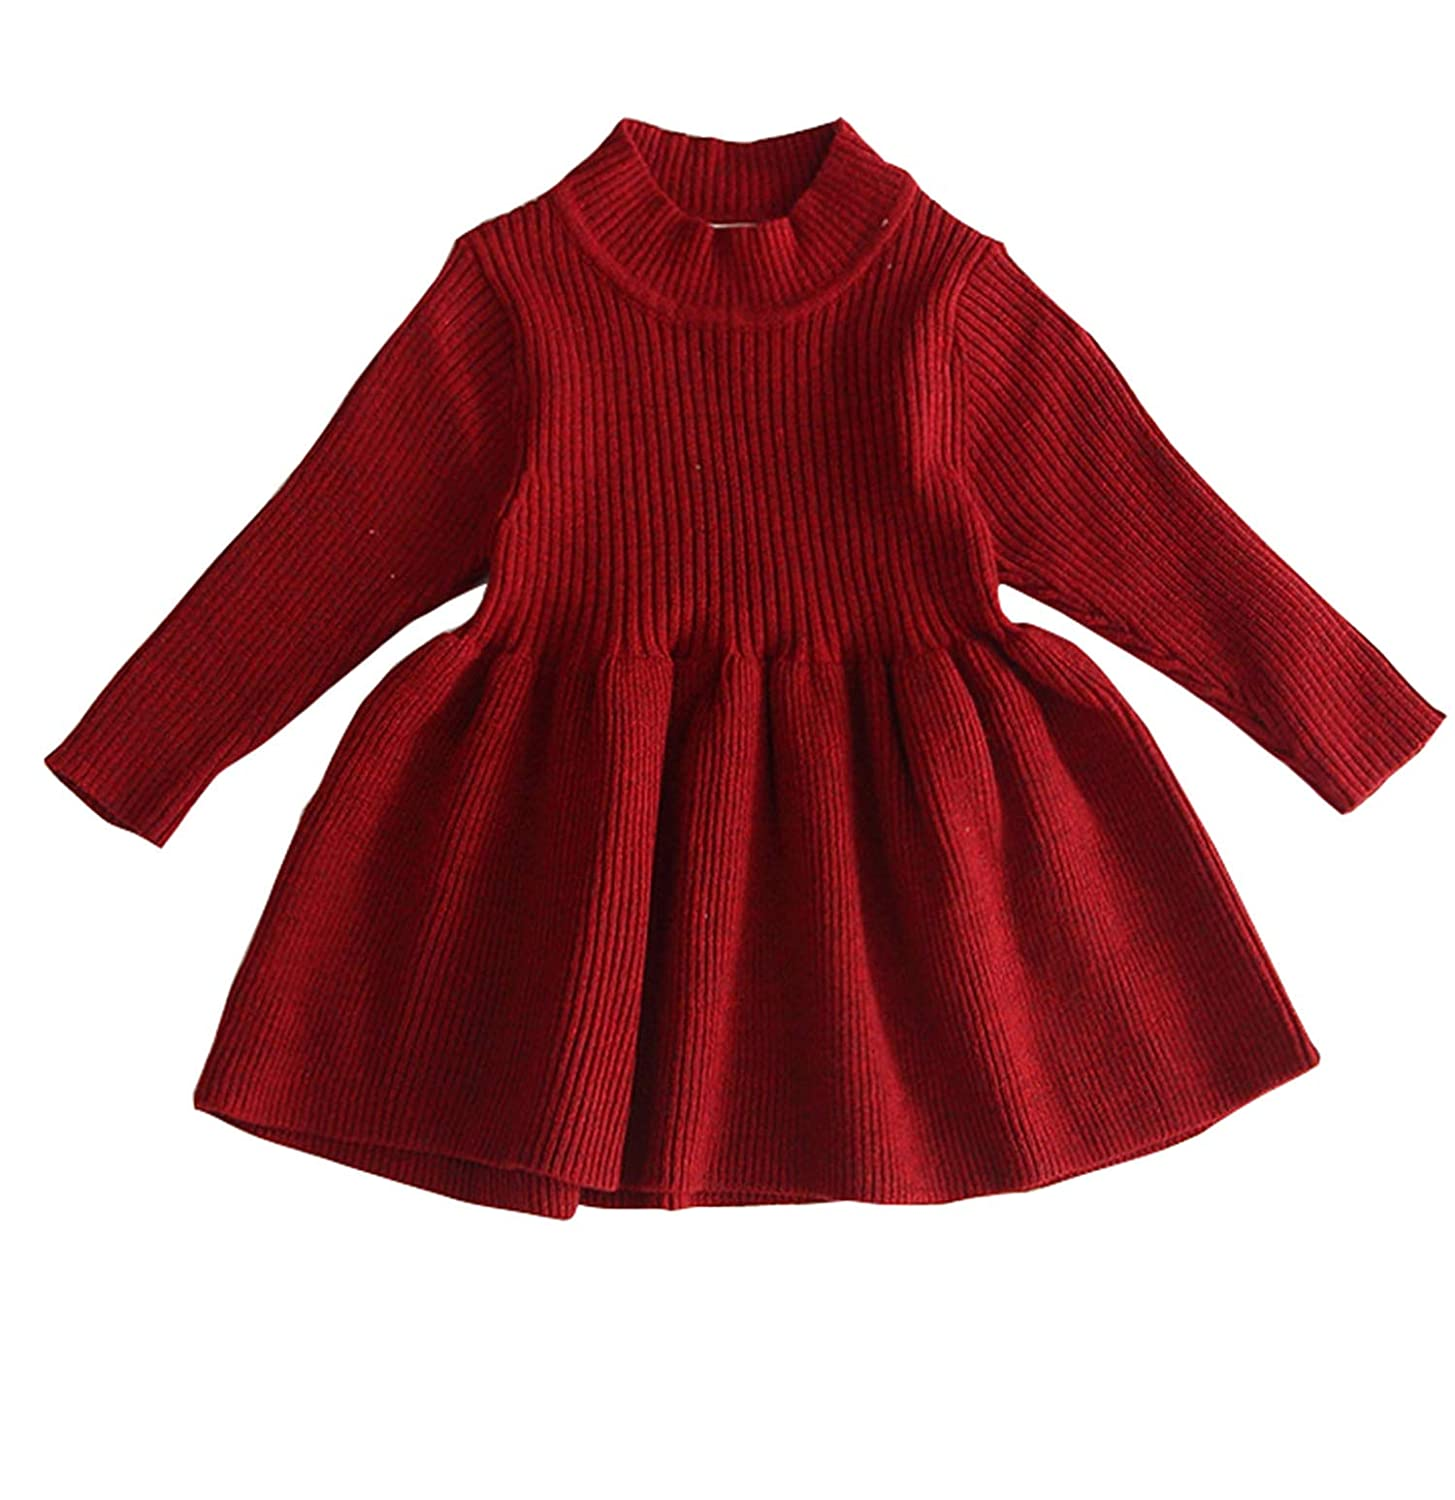 Baby Girl Ruffle Knit Dress 1st 2nd Birthday Long Sleeve Knitted Tulle Tutu Dresses for Wedding Photography